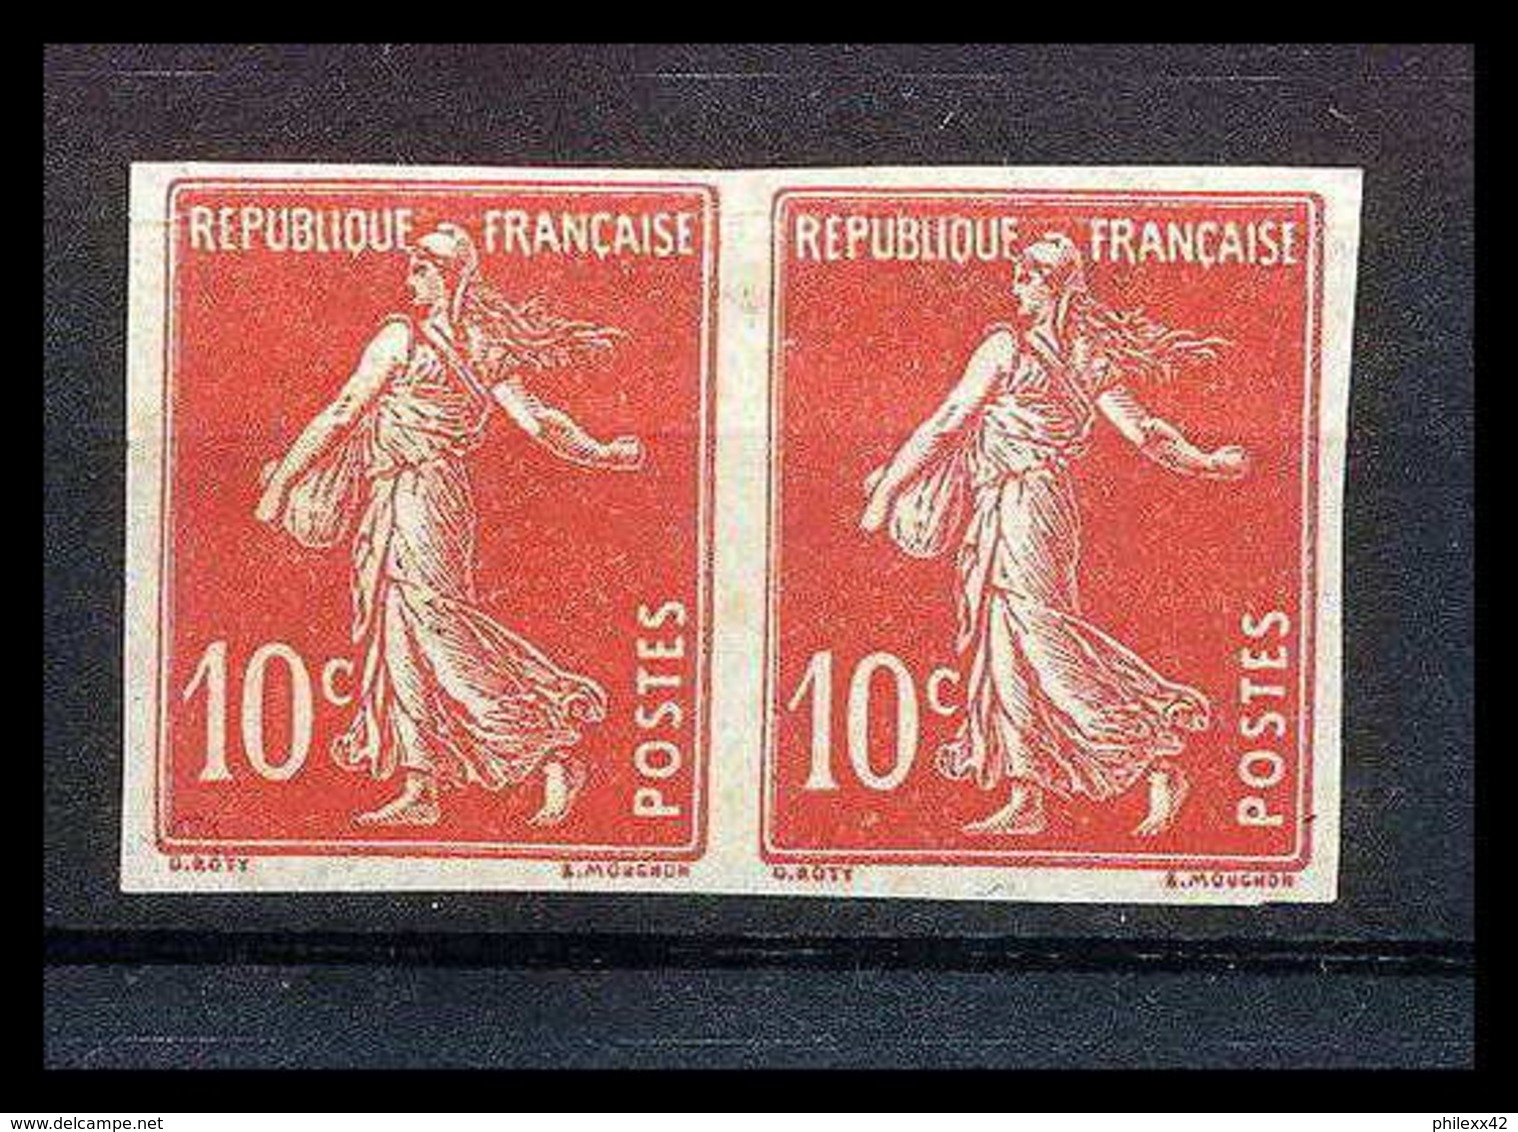 France N°138 10 C Rouge Type Semeuse Non Dentelé * MH (Imperforate) - Imperforates